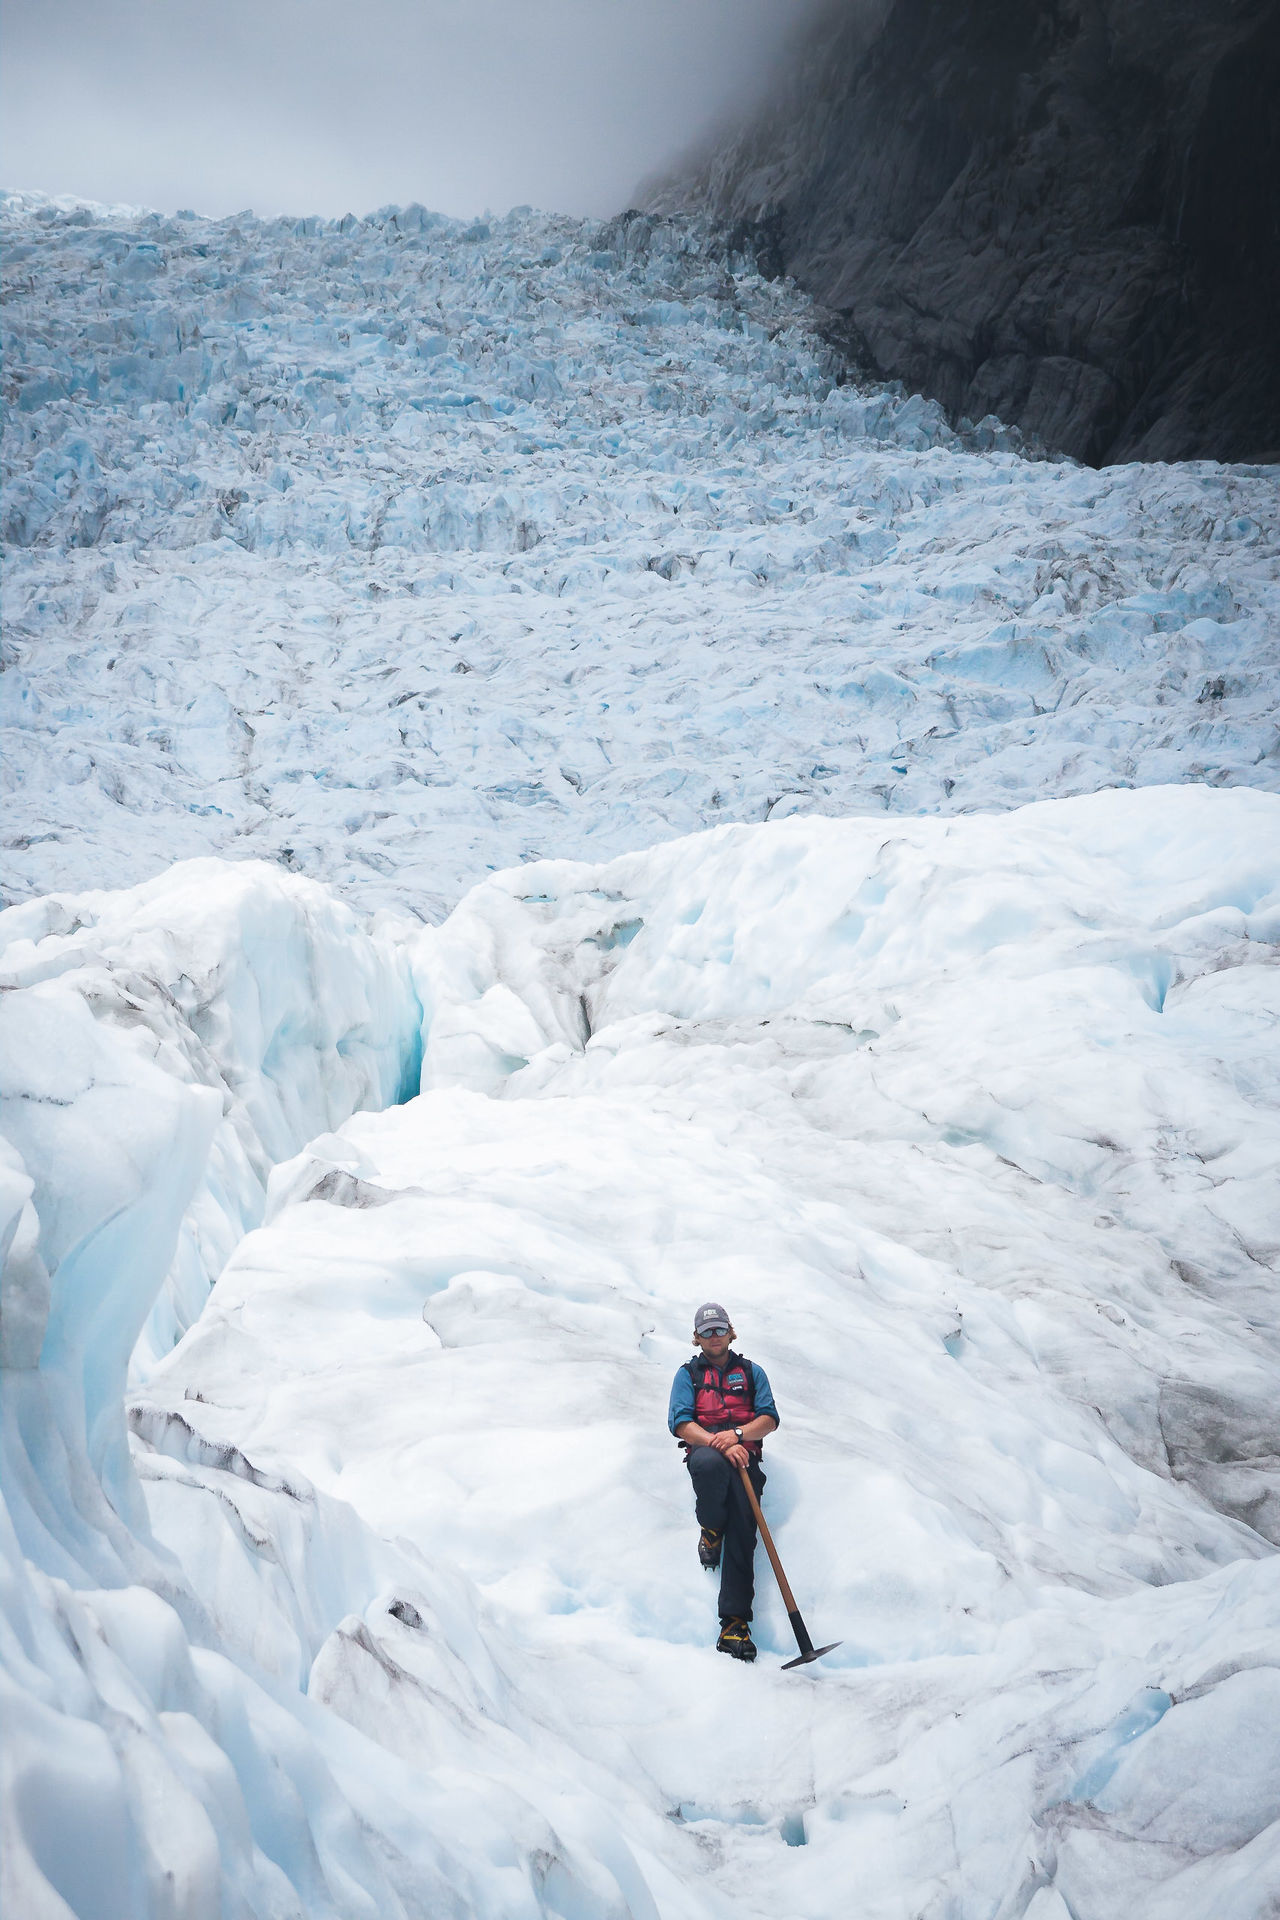 Adventure Beauty In Nature Cold Temperature Fox Glacier Full Length Glacier Landscape Leisure Activity Lifestyles Mountain Mountain Range Nature New Zealand New Zealand Beauty New Zealand Landscape New Zealand Natural New Zealand Scenery Non-urban Scene Original Experiences Scenics Snow Snowcapped Mountain Travel Vacations White Color